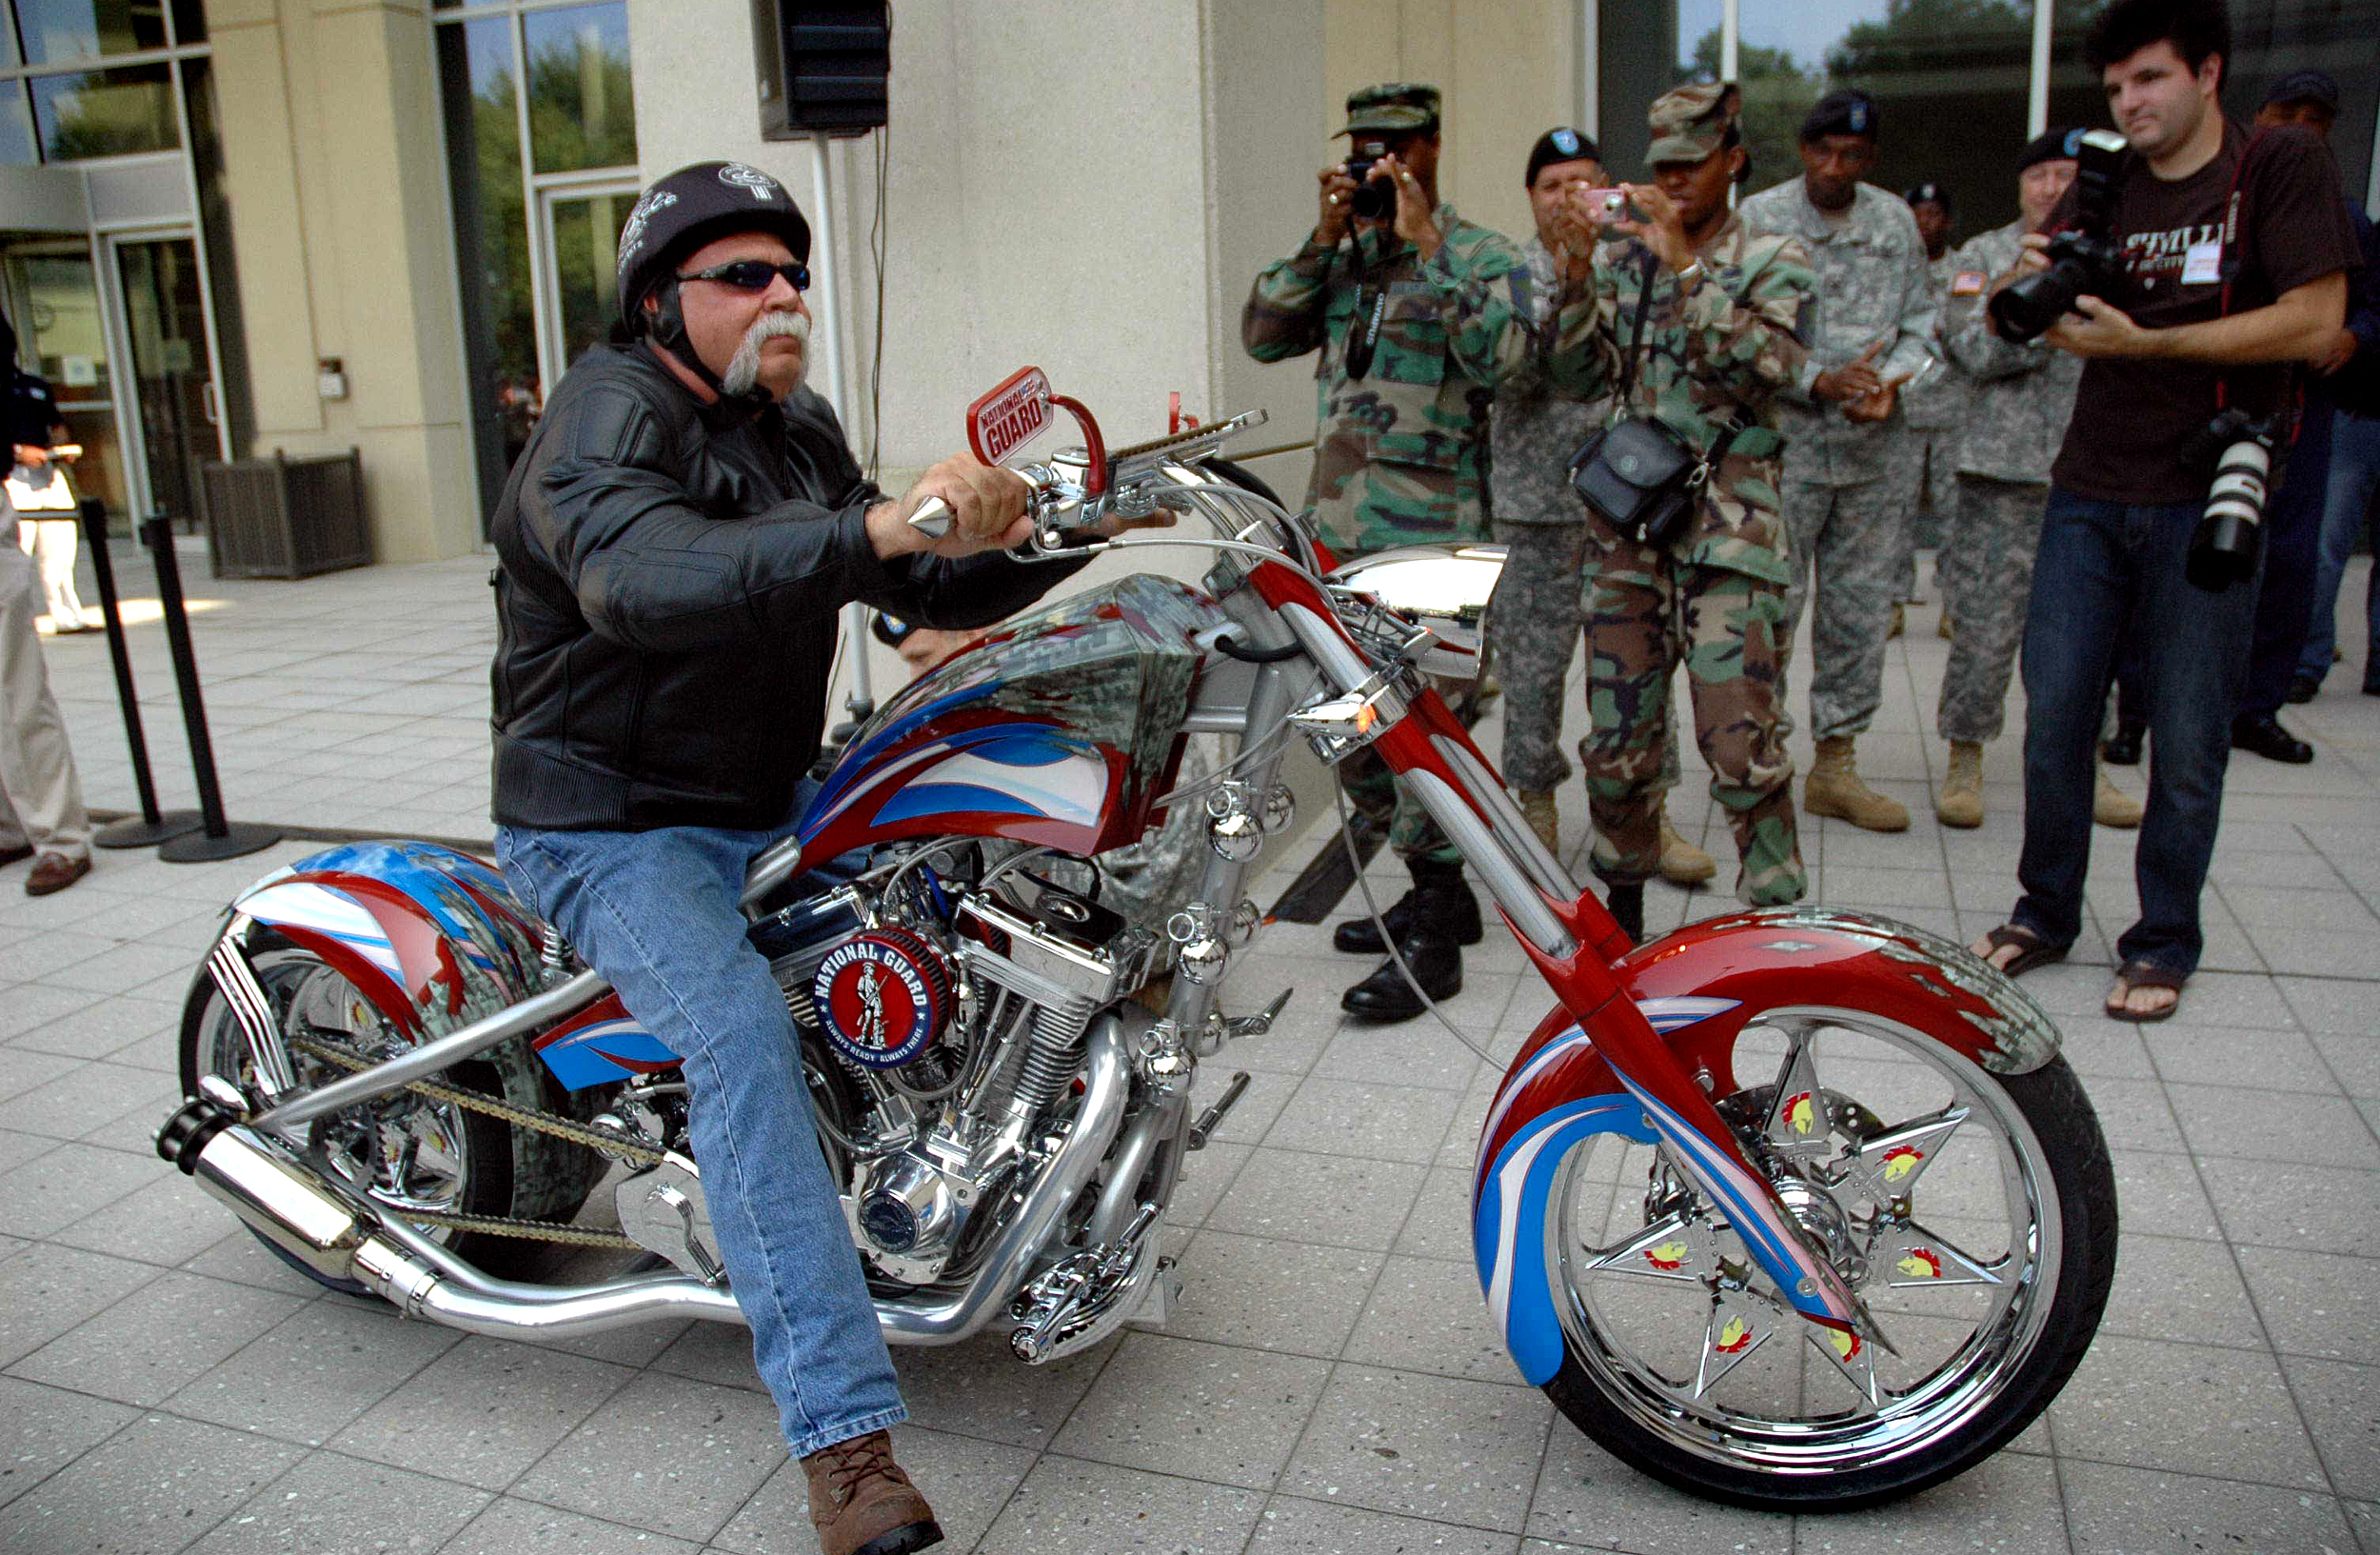 File Paul Teutul  Sr  on Patriot Chopper in addition Bmw in addition 57419 1978 Amf Roadmaster A110 Bicycle Moped additionally Can T Wait For The New Ford Bronco Here S The Ideal Alternative furthermore Cb500 By Ki ic. on vintage honda cars in the u s